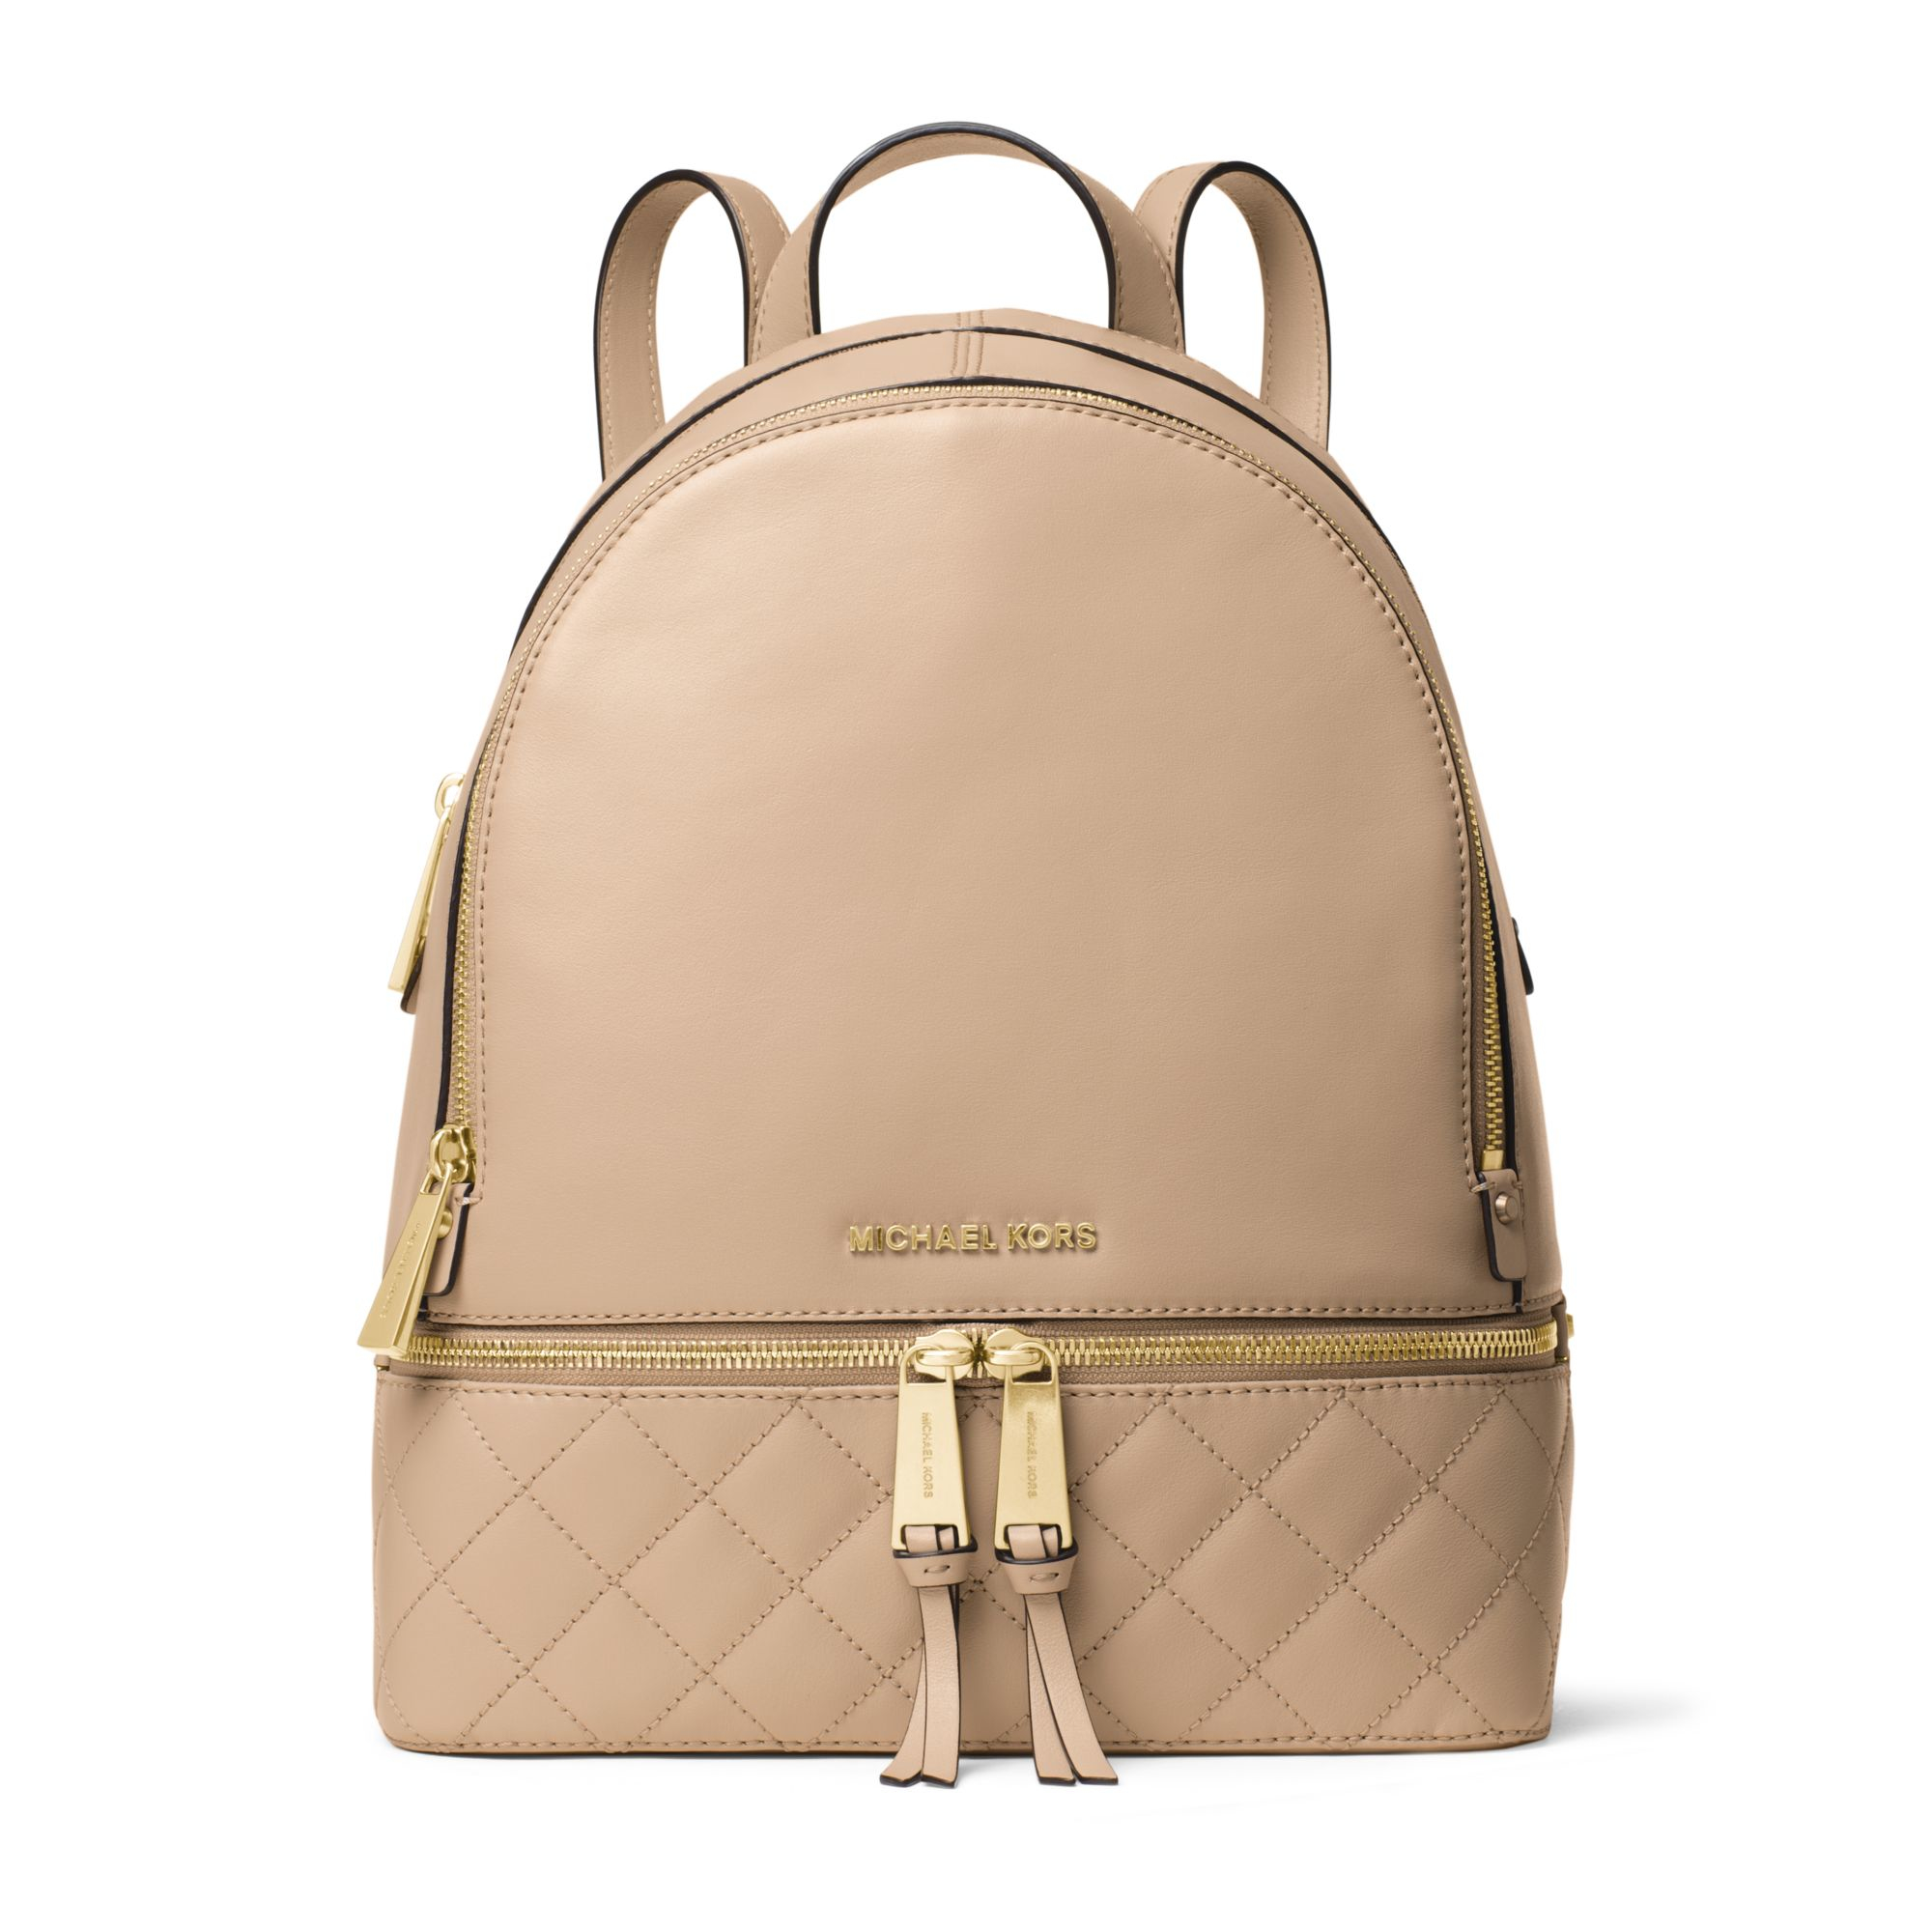 michael kors rhea medium quilted leather backpack in natural lyst. Black Bedroom Furniture Sets. Home Design Ideas